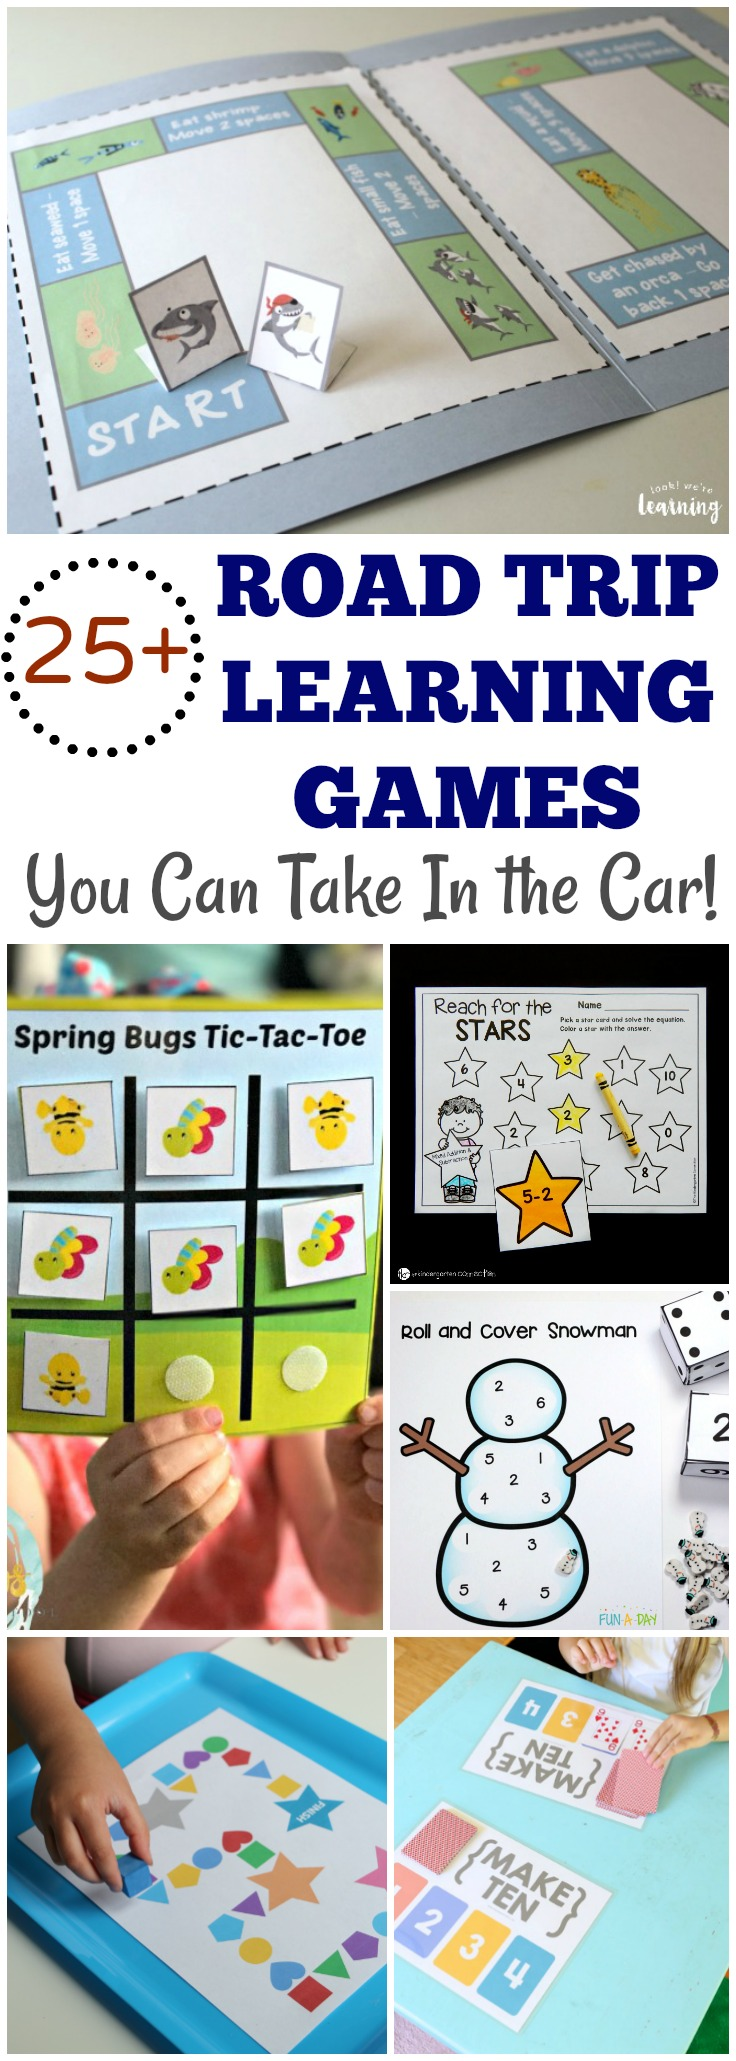 Pack up the car and bring along these printable road trip games for kids to keep learning while you ride!